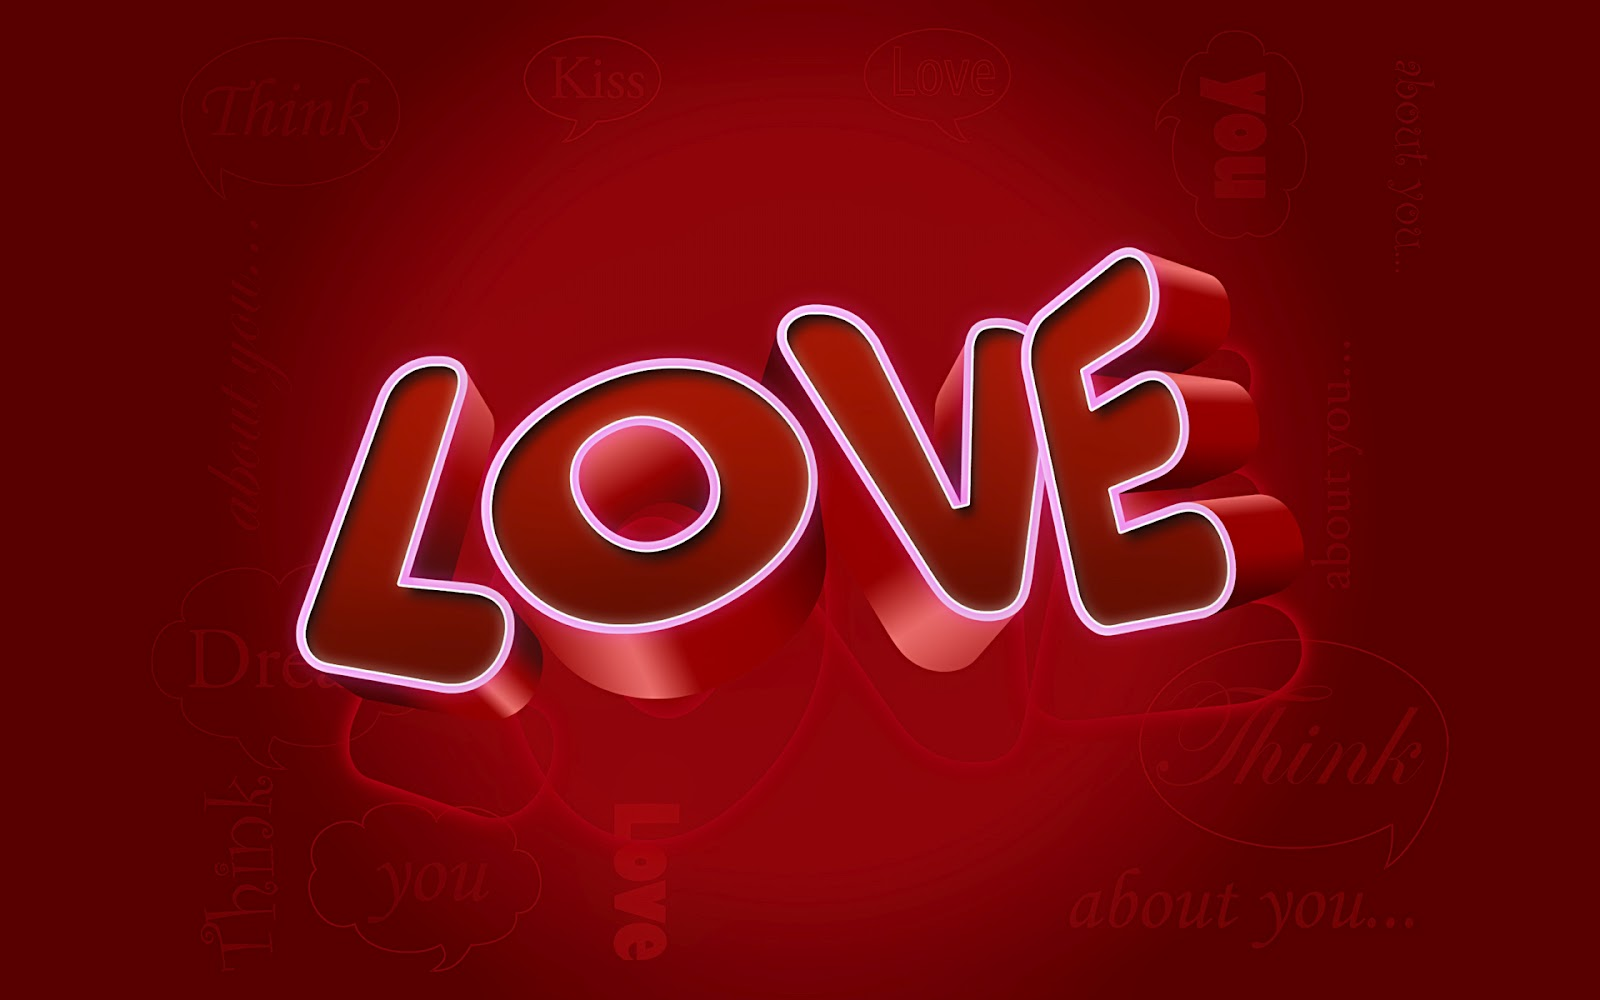 Wallpaper Desk : I love you wallpaper, i love you wallpapersWallpaper Desk